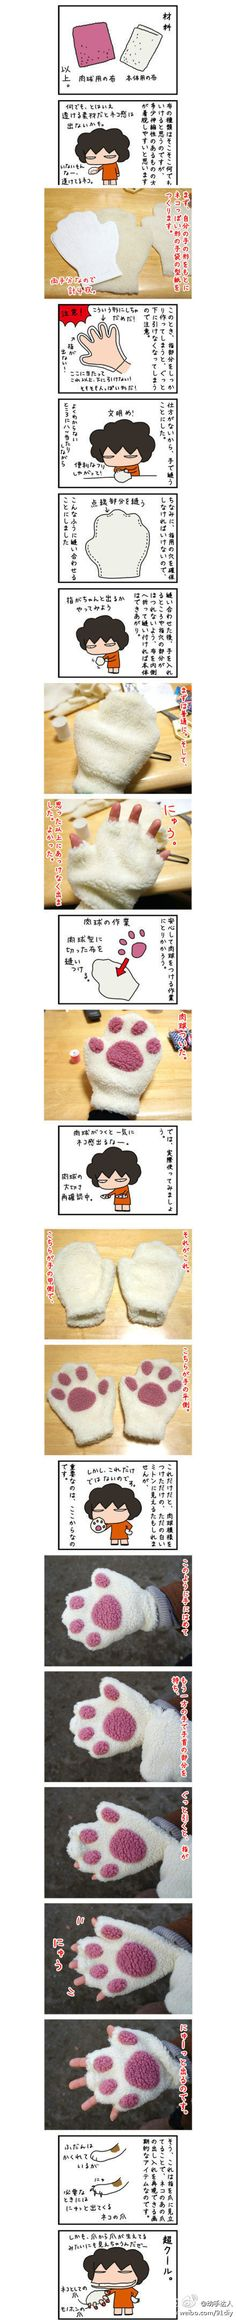 DIY paws-gloves! I just follow the visual cuz I speak no jap!